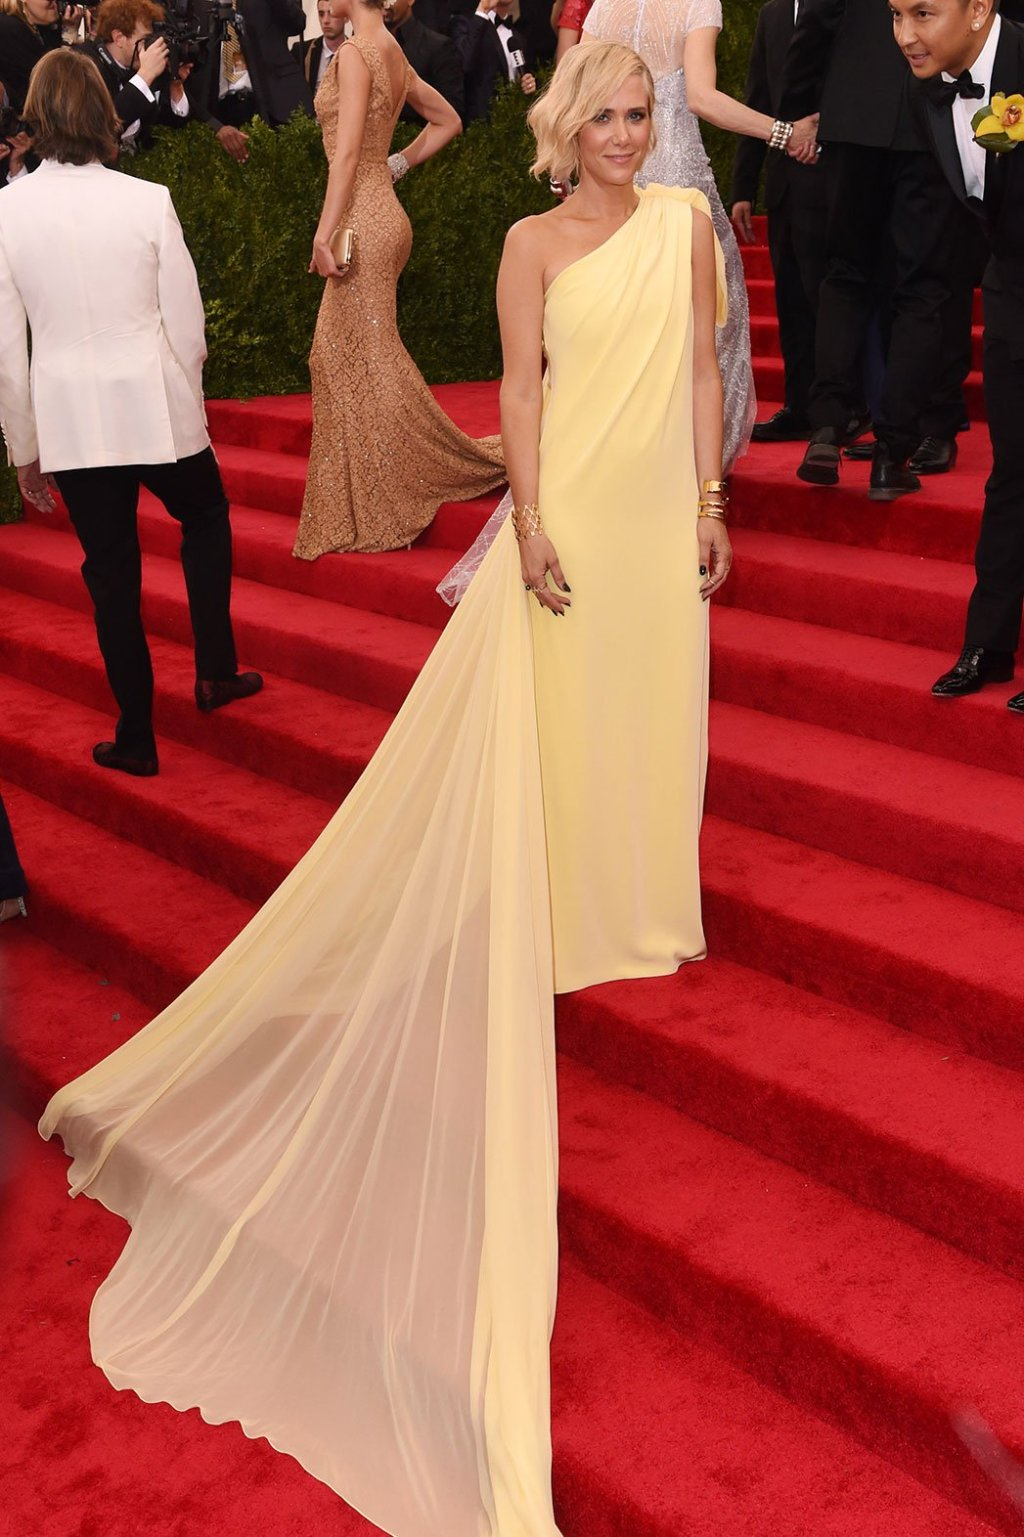 photo credit: Getty images draped in yellow/prabal Gurung